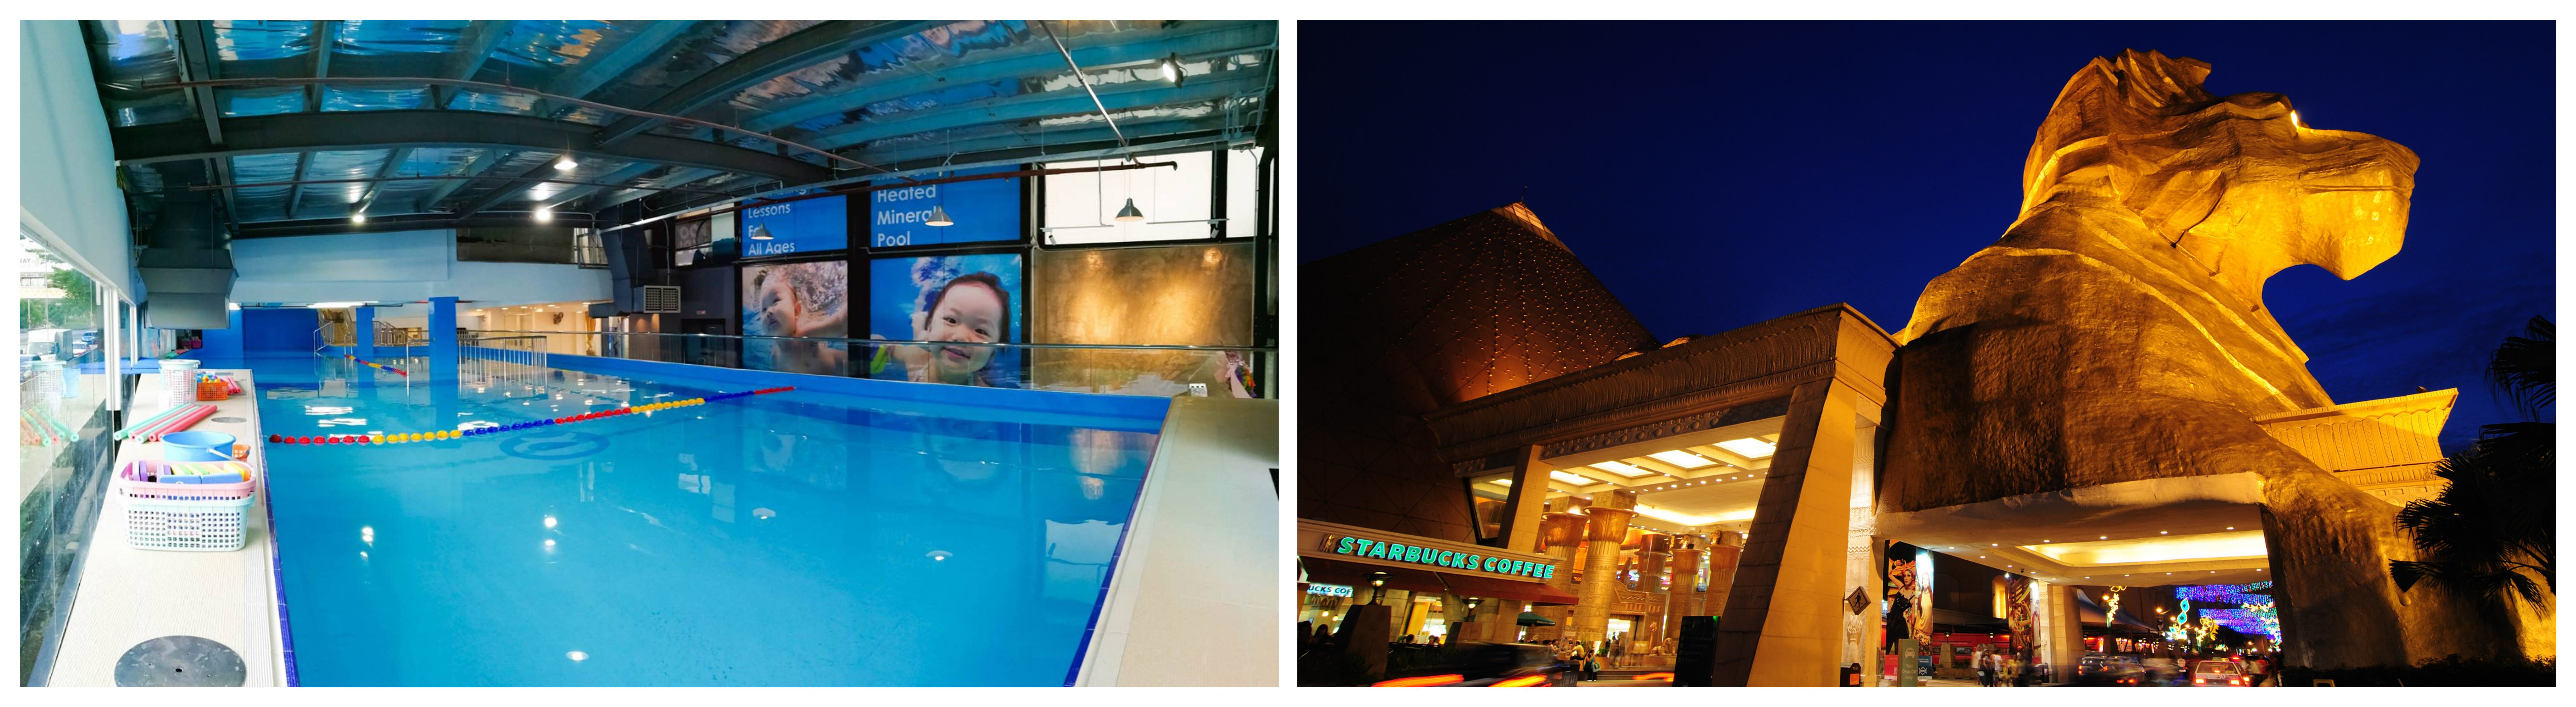 swimming lesson in sunway pyramid